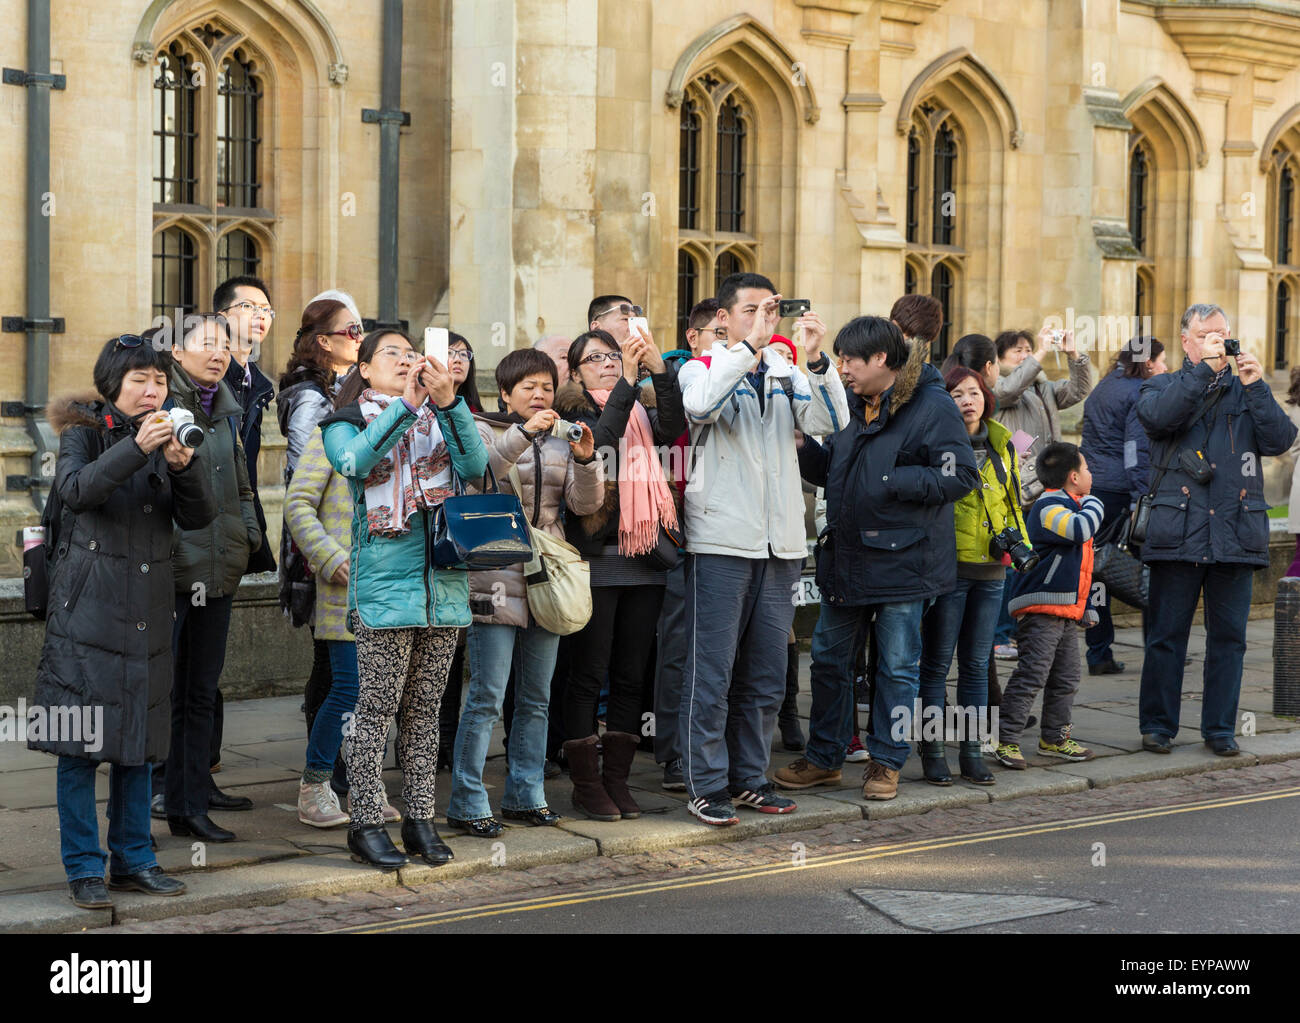 Group of Chinese tourists on Cambridge St in Cambridge England pause together to take photographs - Stock Image